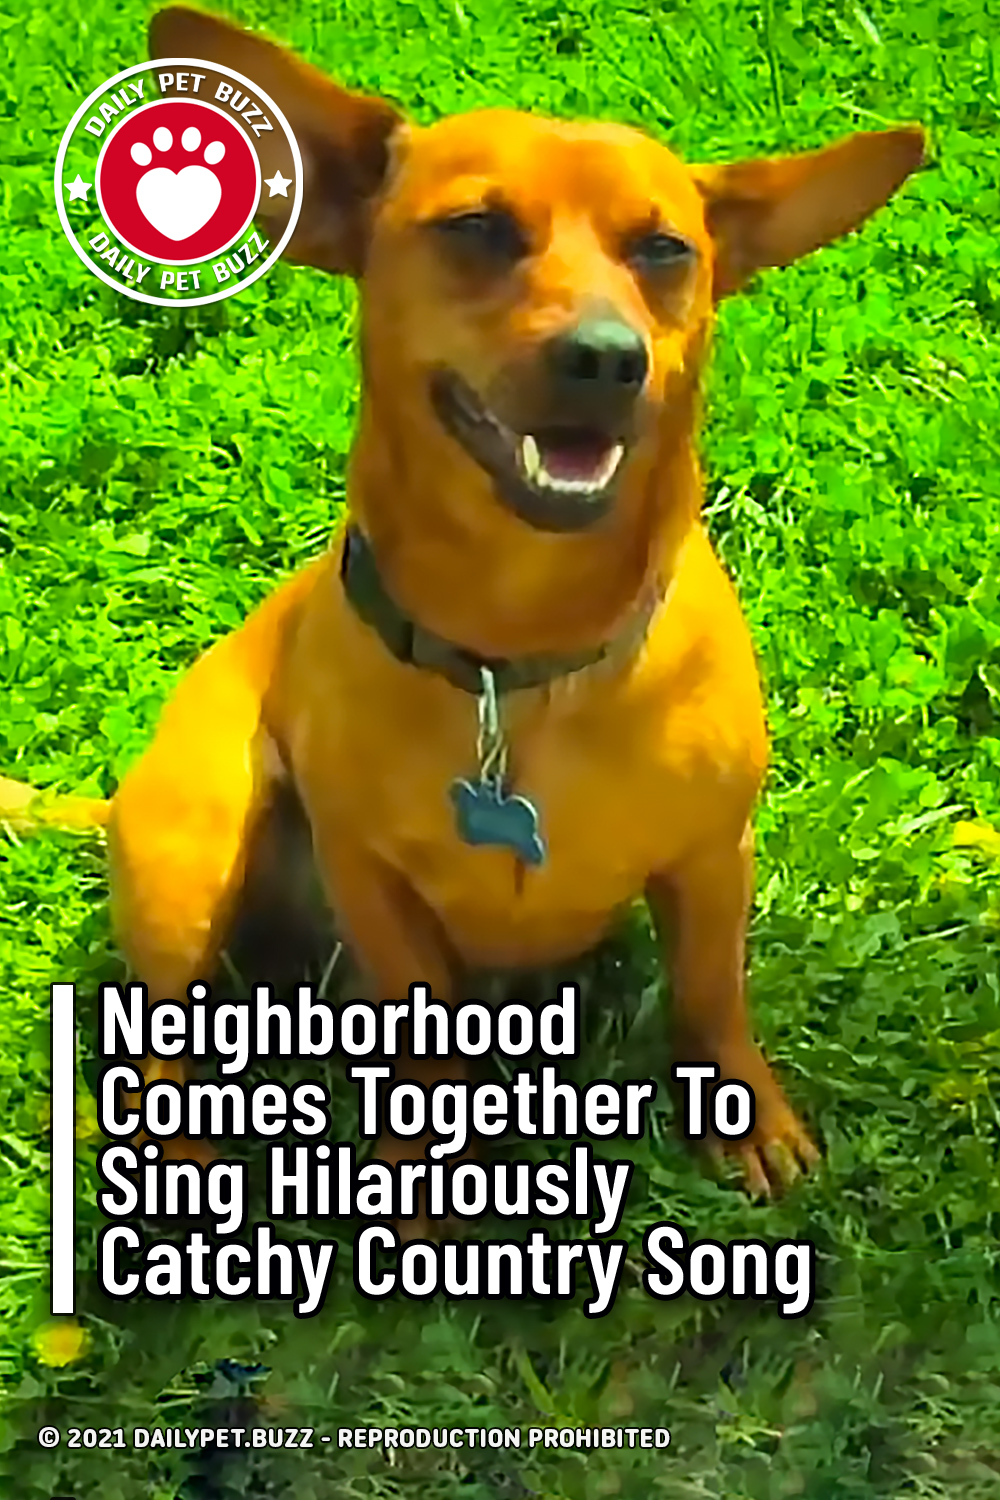 Neighborhood Comes Together To Sing Hilariously Catchy Country Song